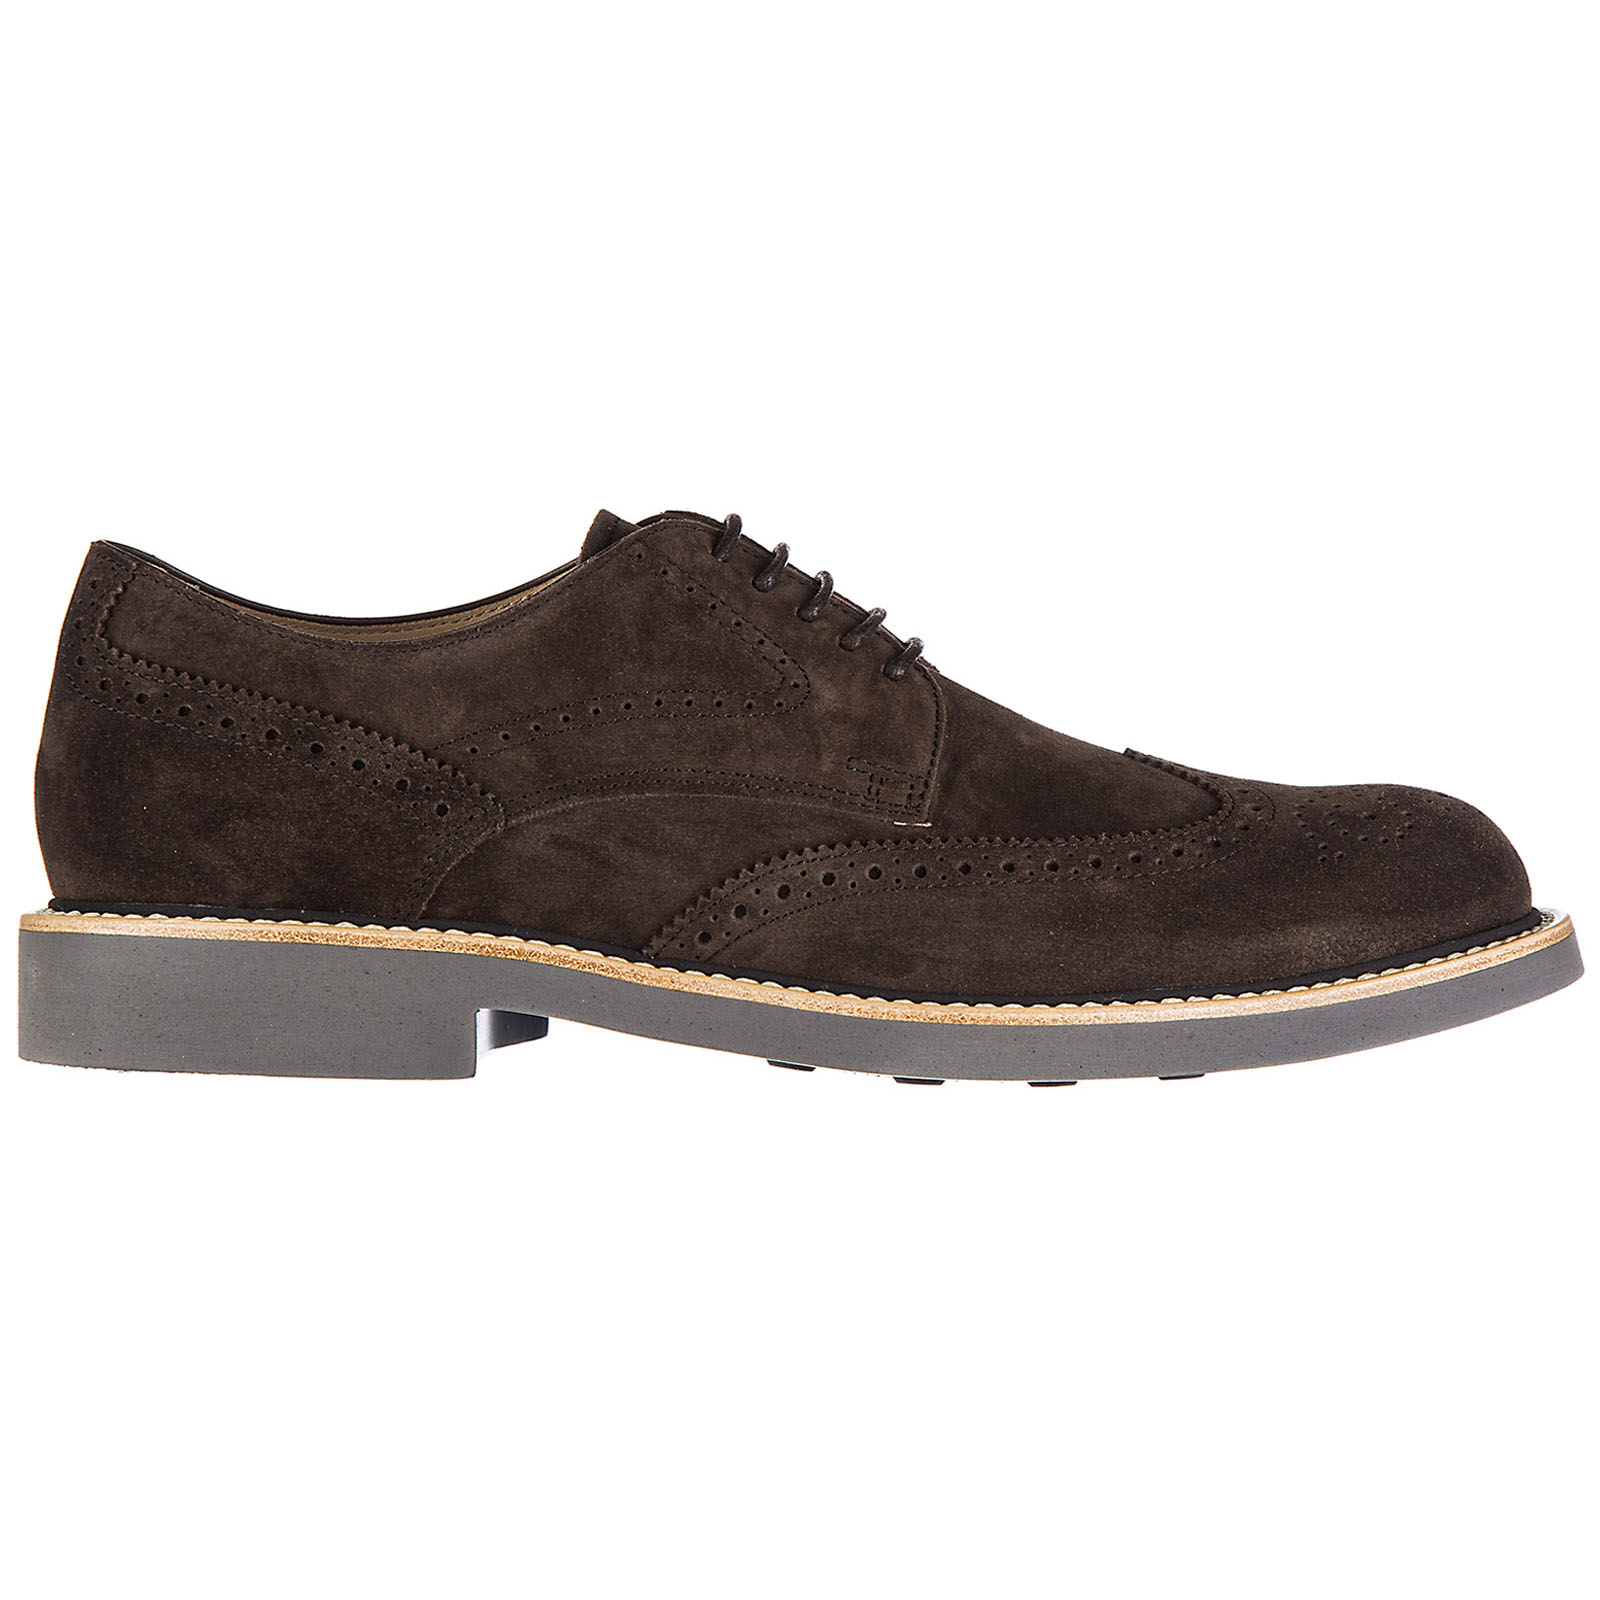 Men's classic suede lace up laced formal shoes bucatura fondo light derby